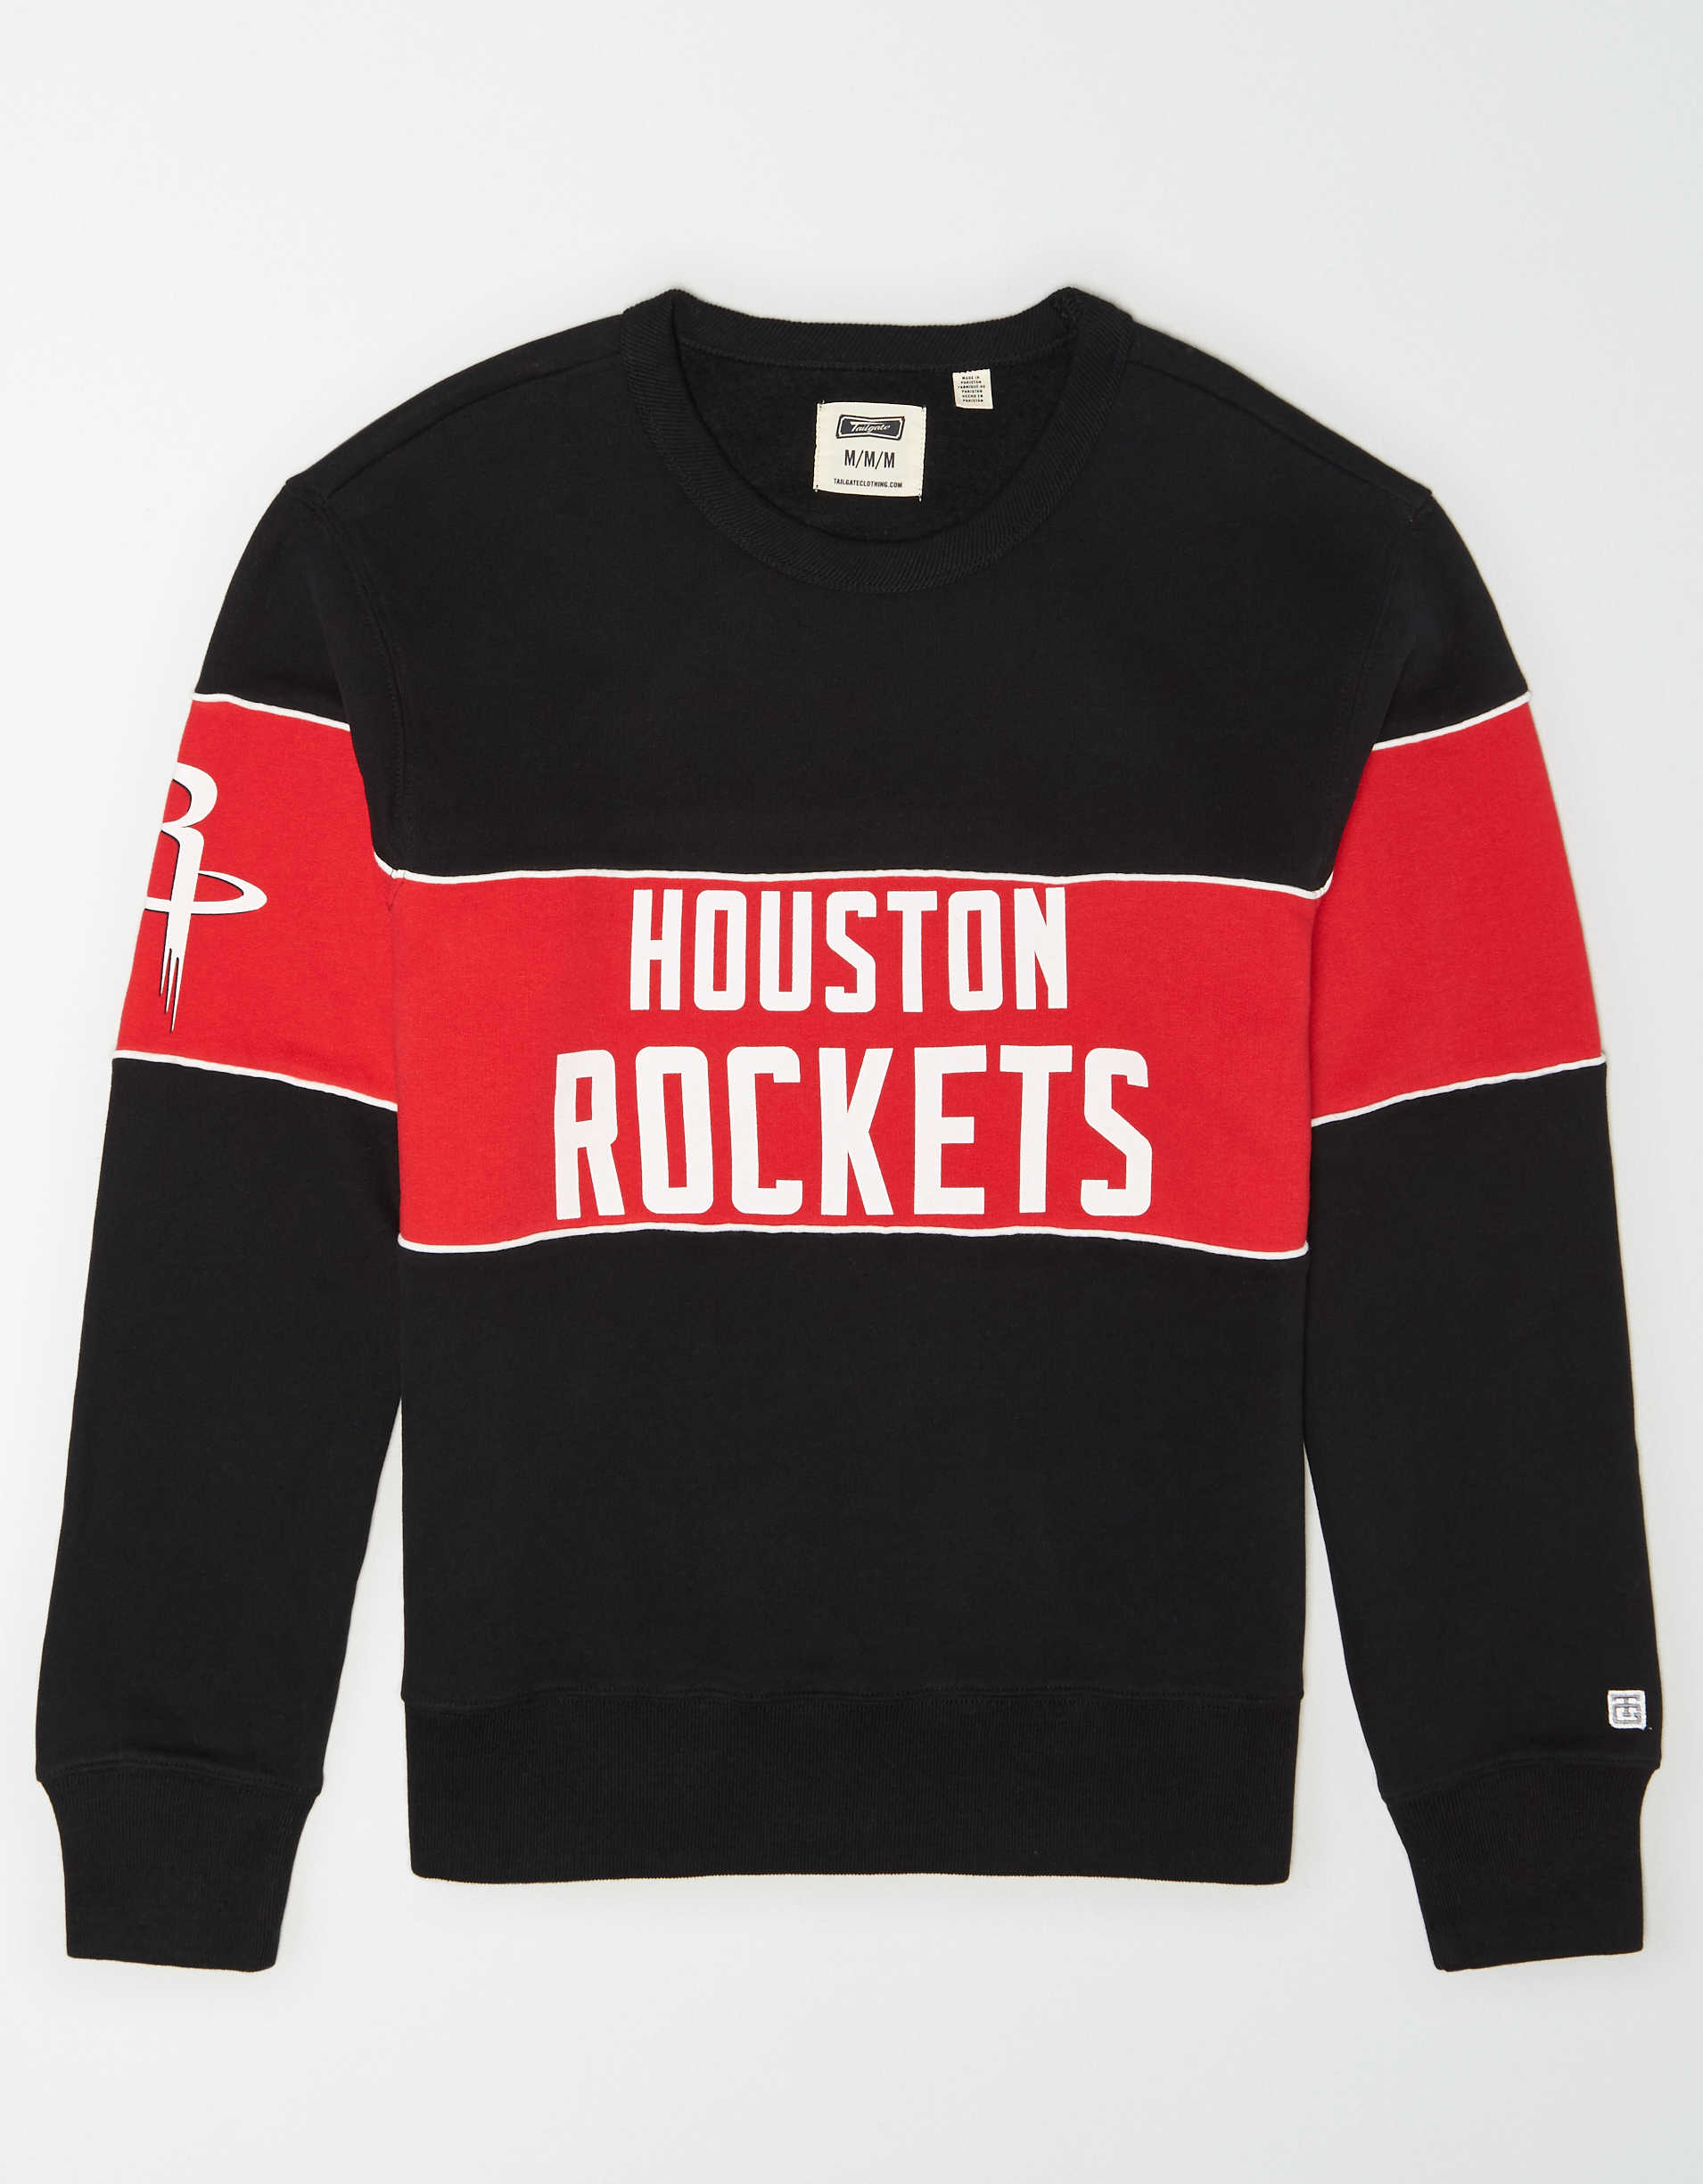 Tailgate Men's Houston Rockets Fleece Sweatshirt